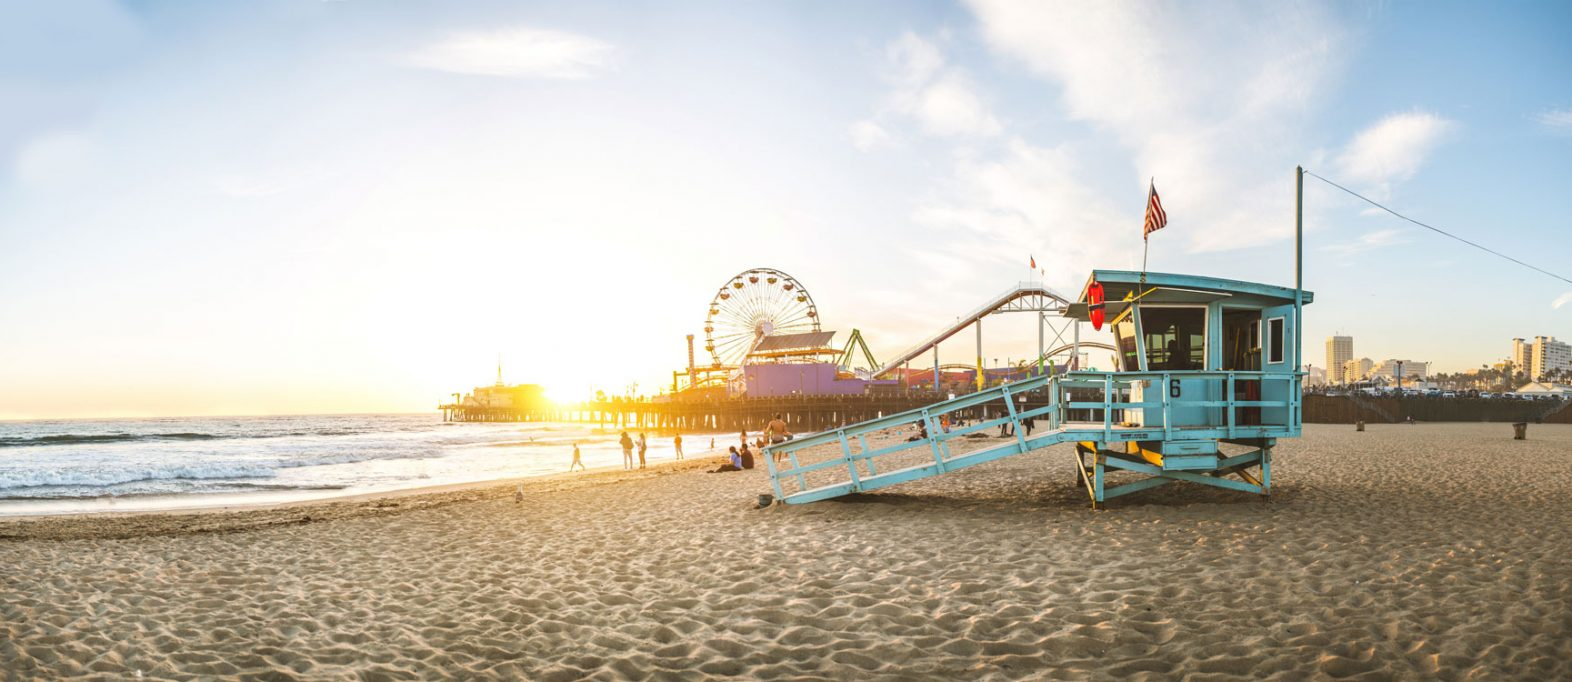 Santa Monica Pier | credit: Adobe Stock ID 139629299